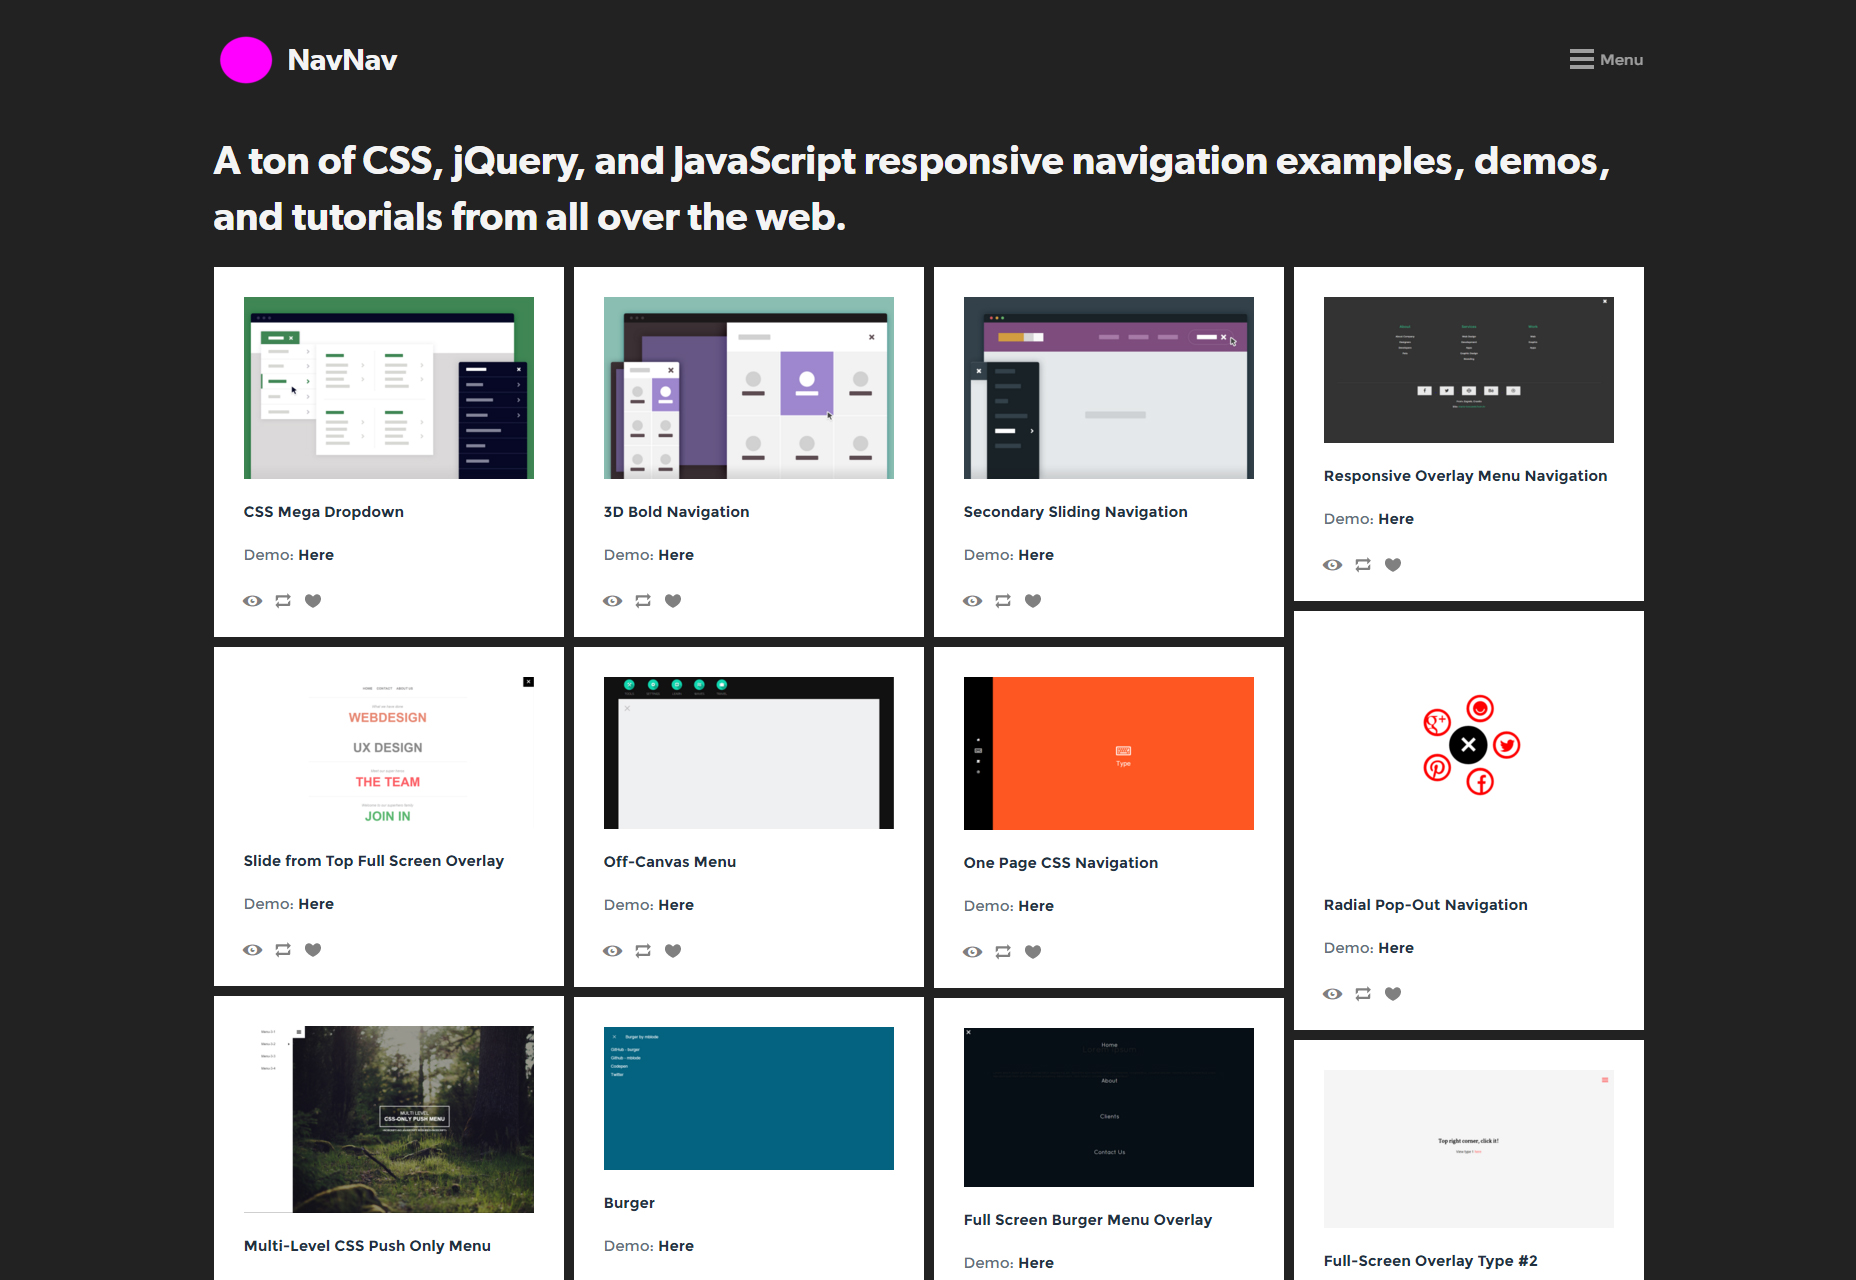 NavNav: Responsive Navigation Bar & Menu Resources